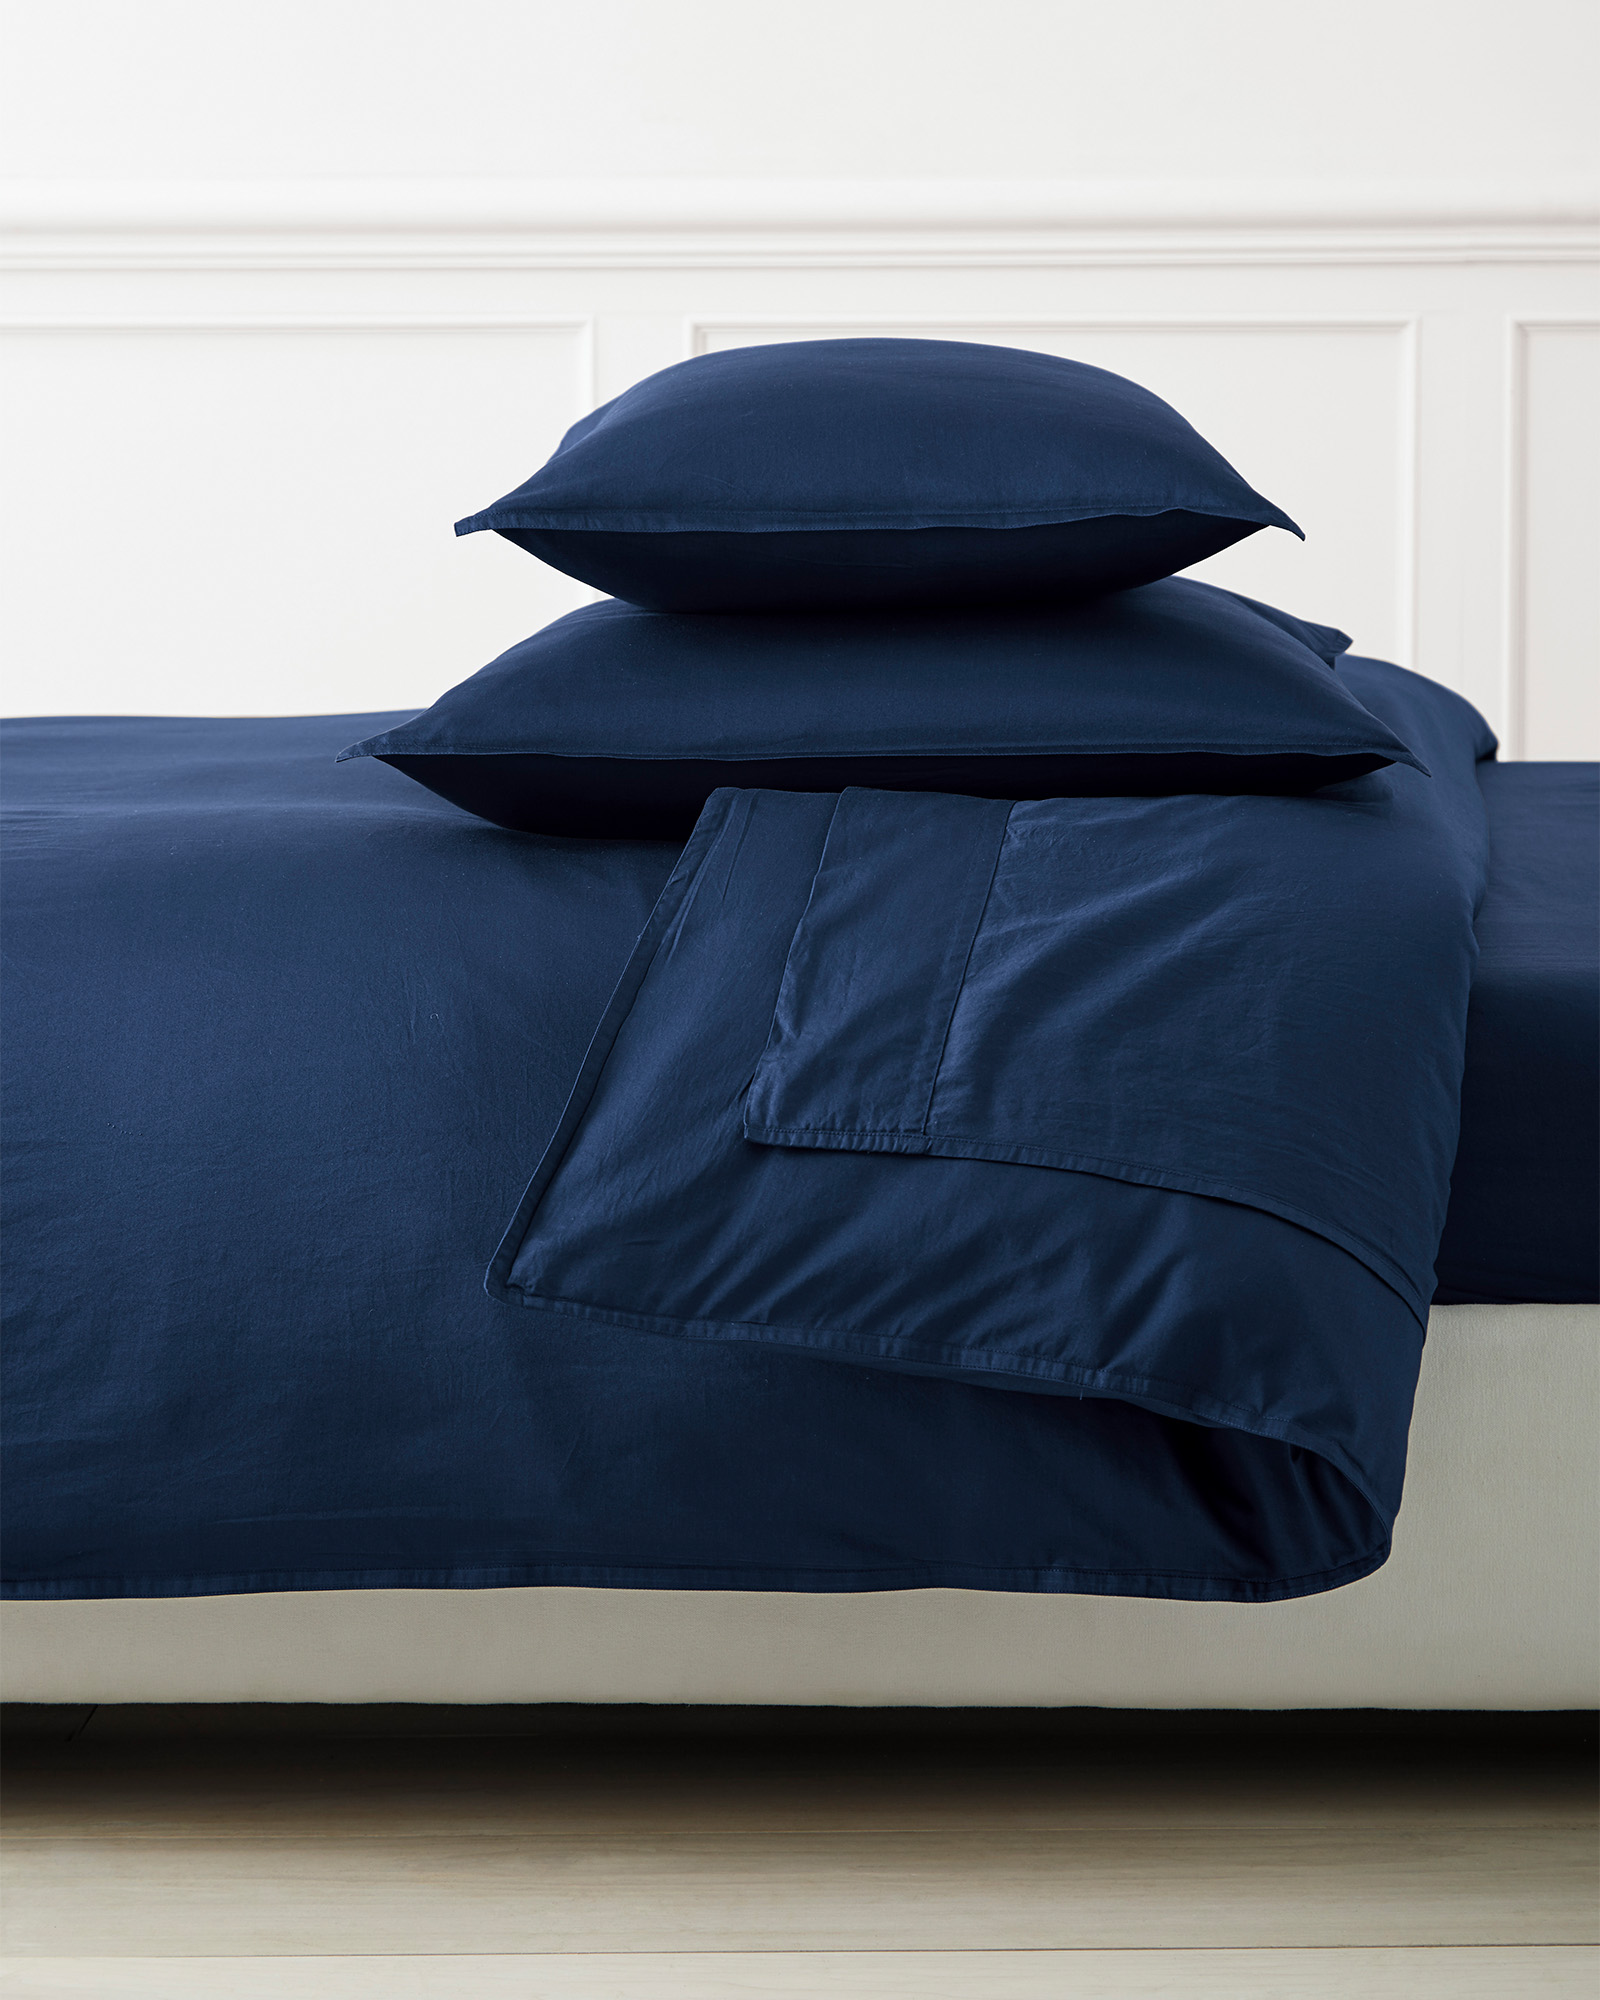 Sorrento Washed Sateen Duvet Cover, Navy